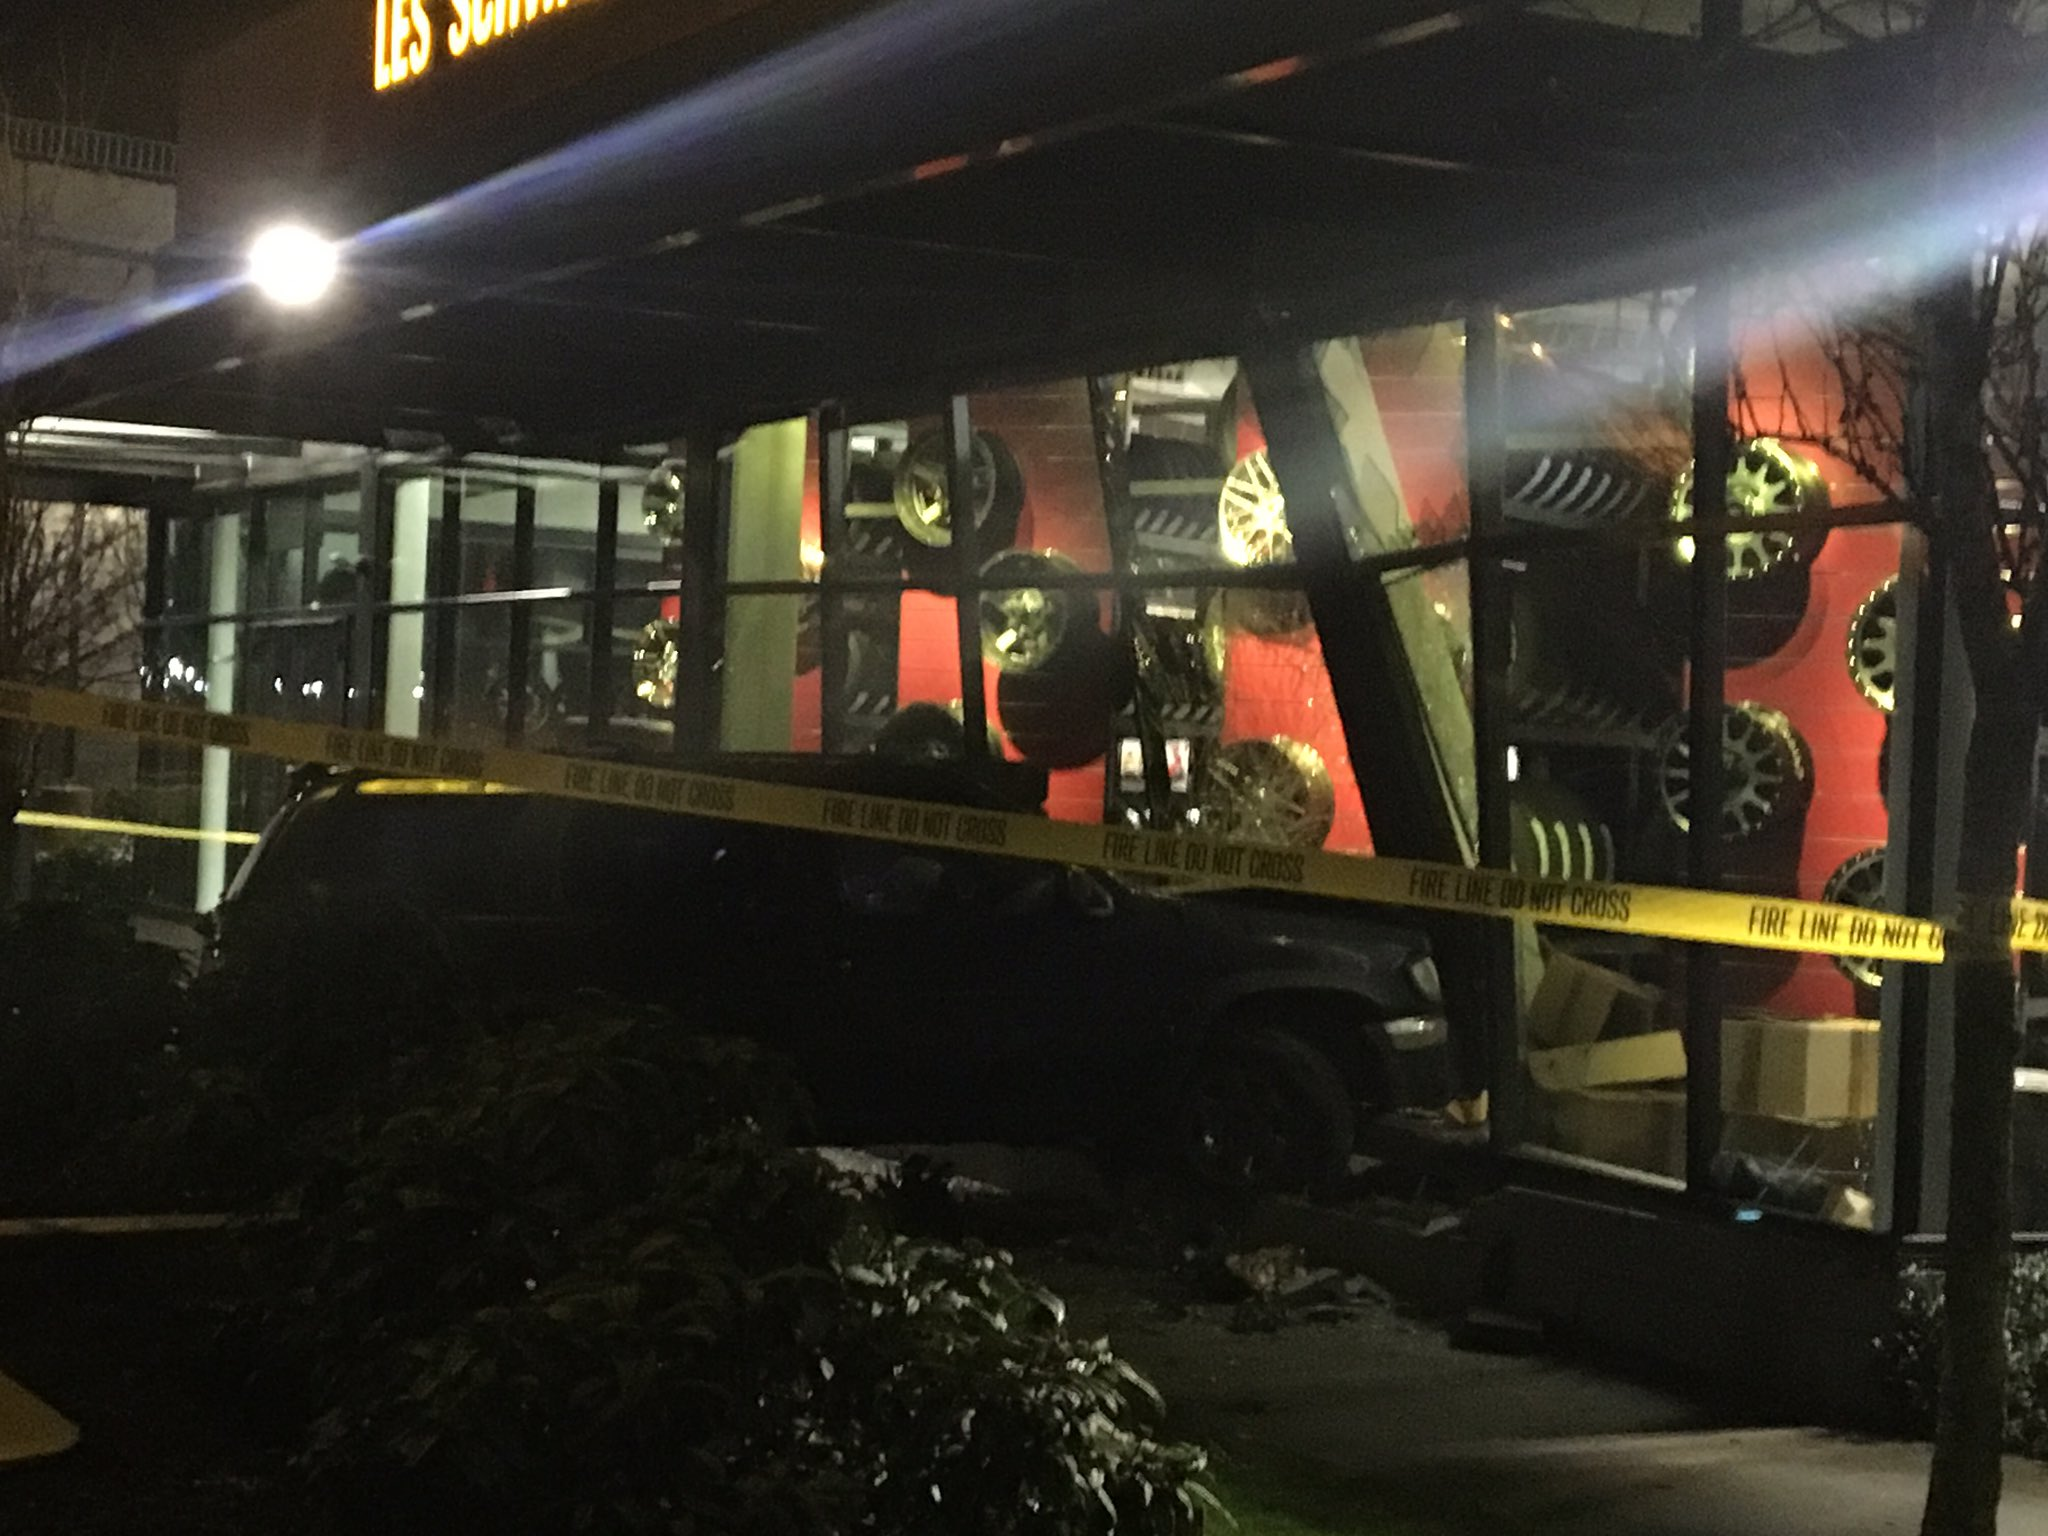 A driver in an SUV crashed into the front of a Les Schwab Tire Center in Sellwood on Jan. 16, 2019. KATU photo